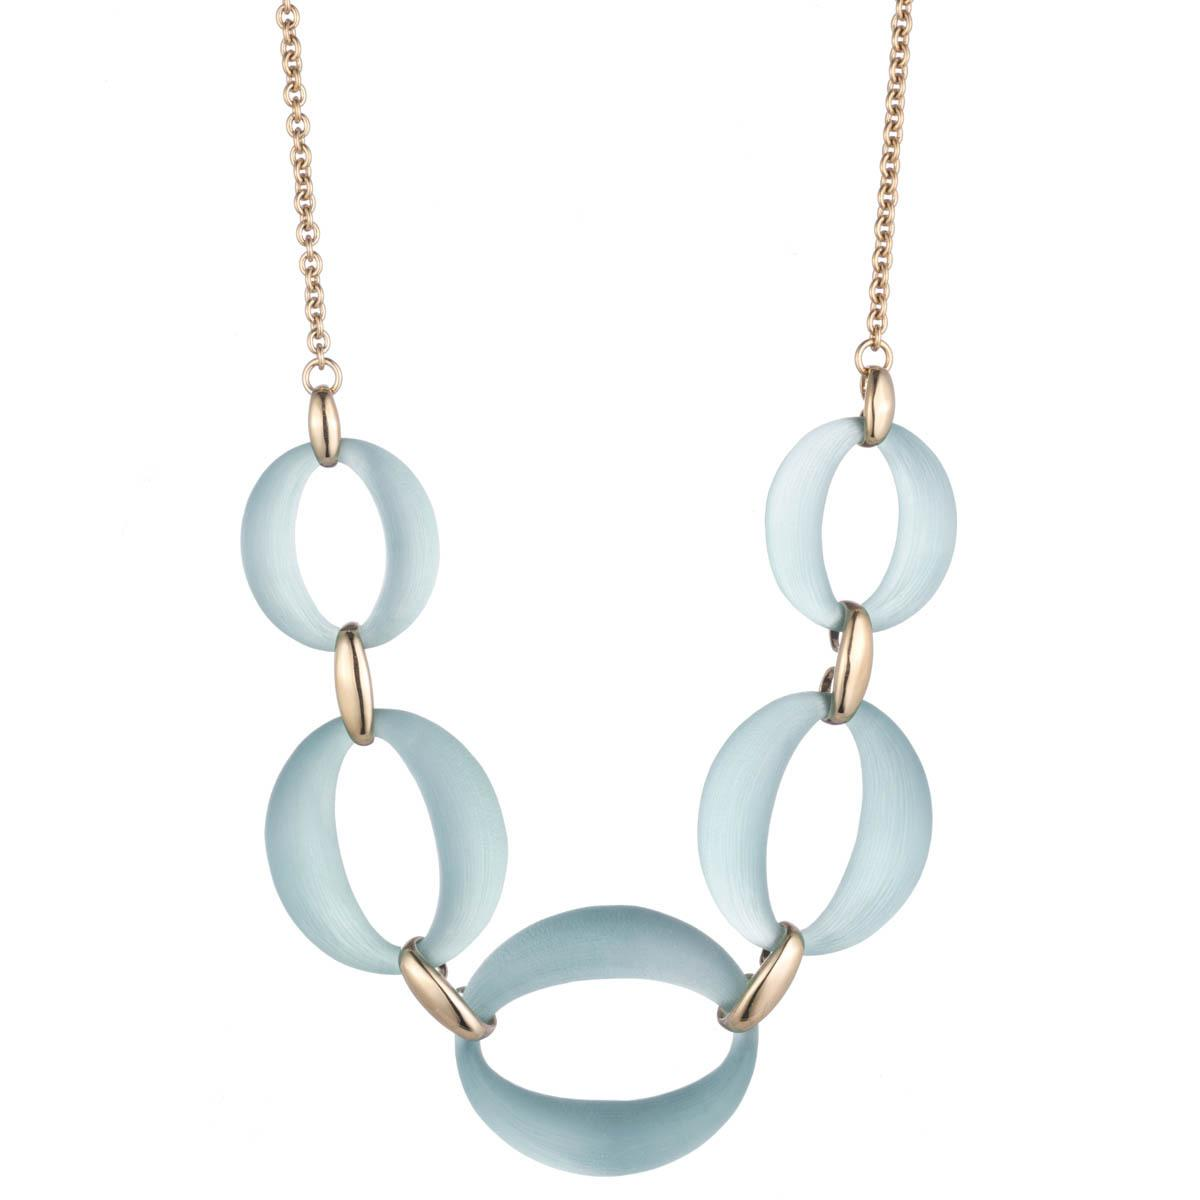 Alexis Bittar Large Lucite Link Necklace Blue grey ABHsO